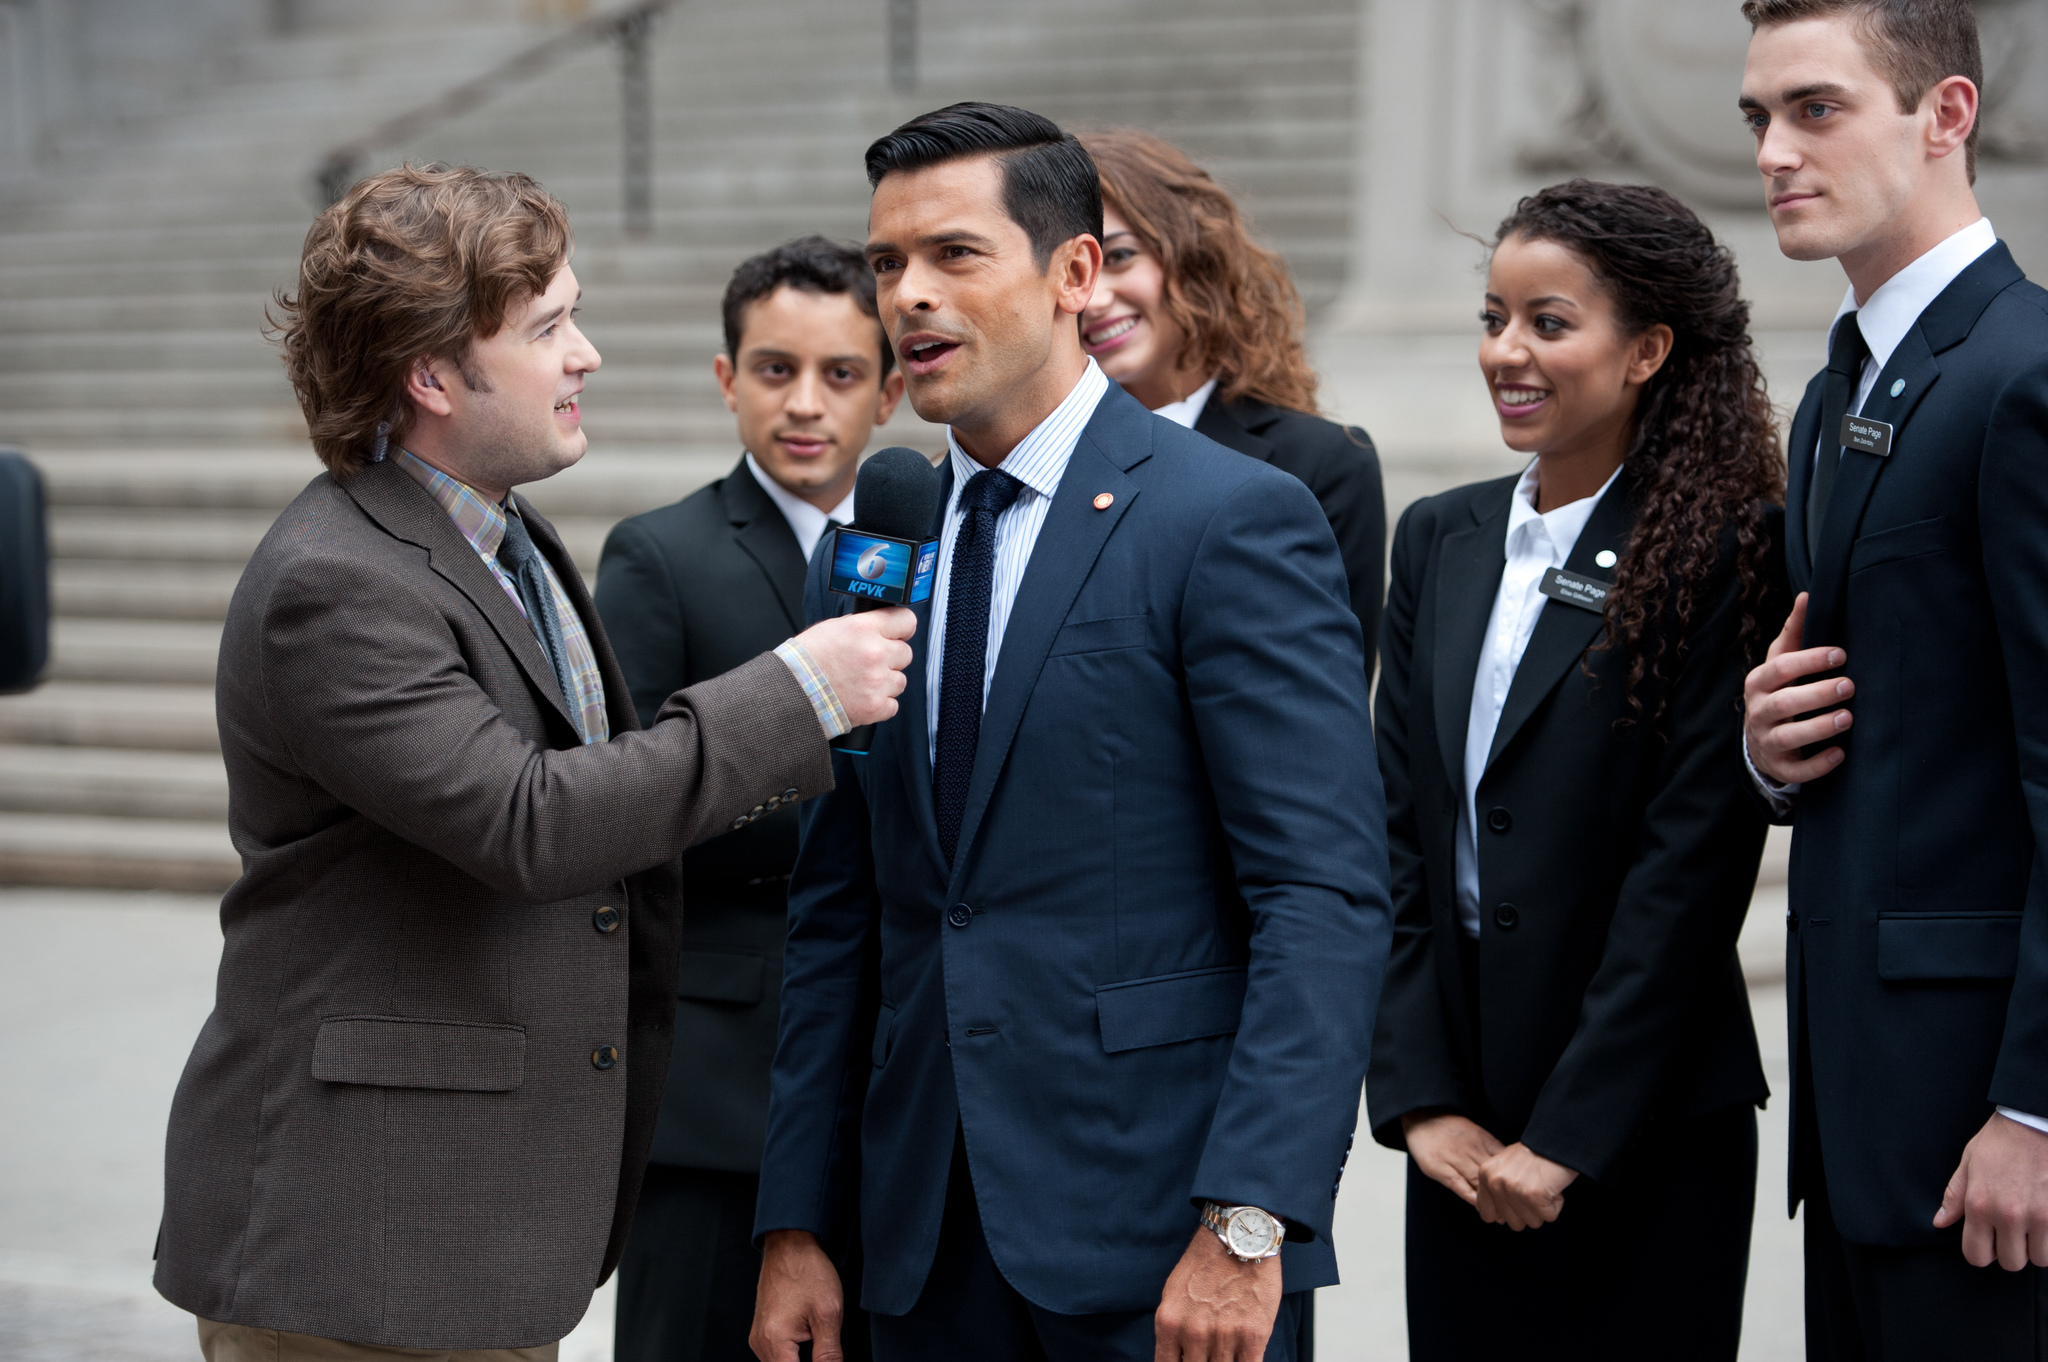 Haley Joel Osment and Mark Consuelos in Alpha House (2013)